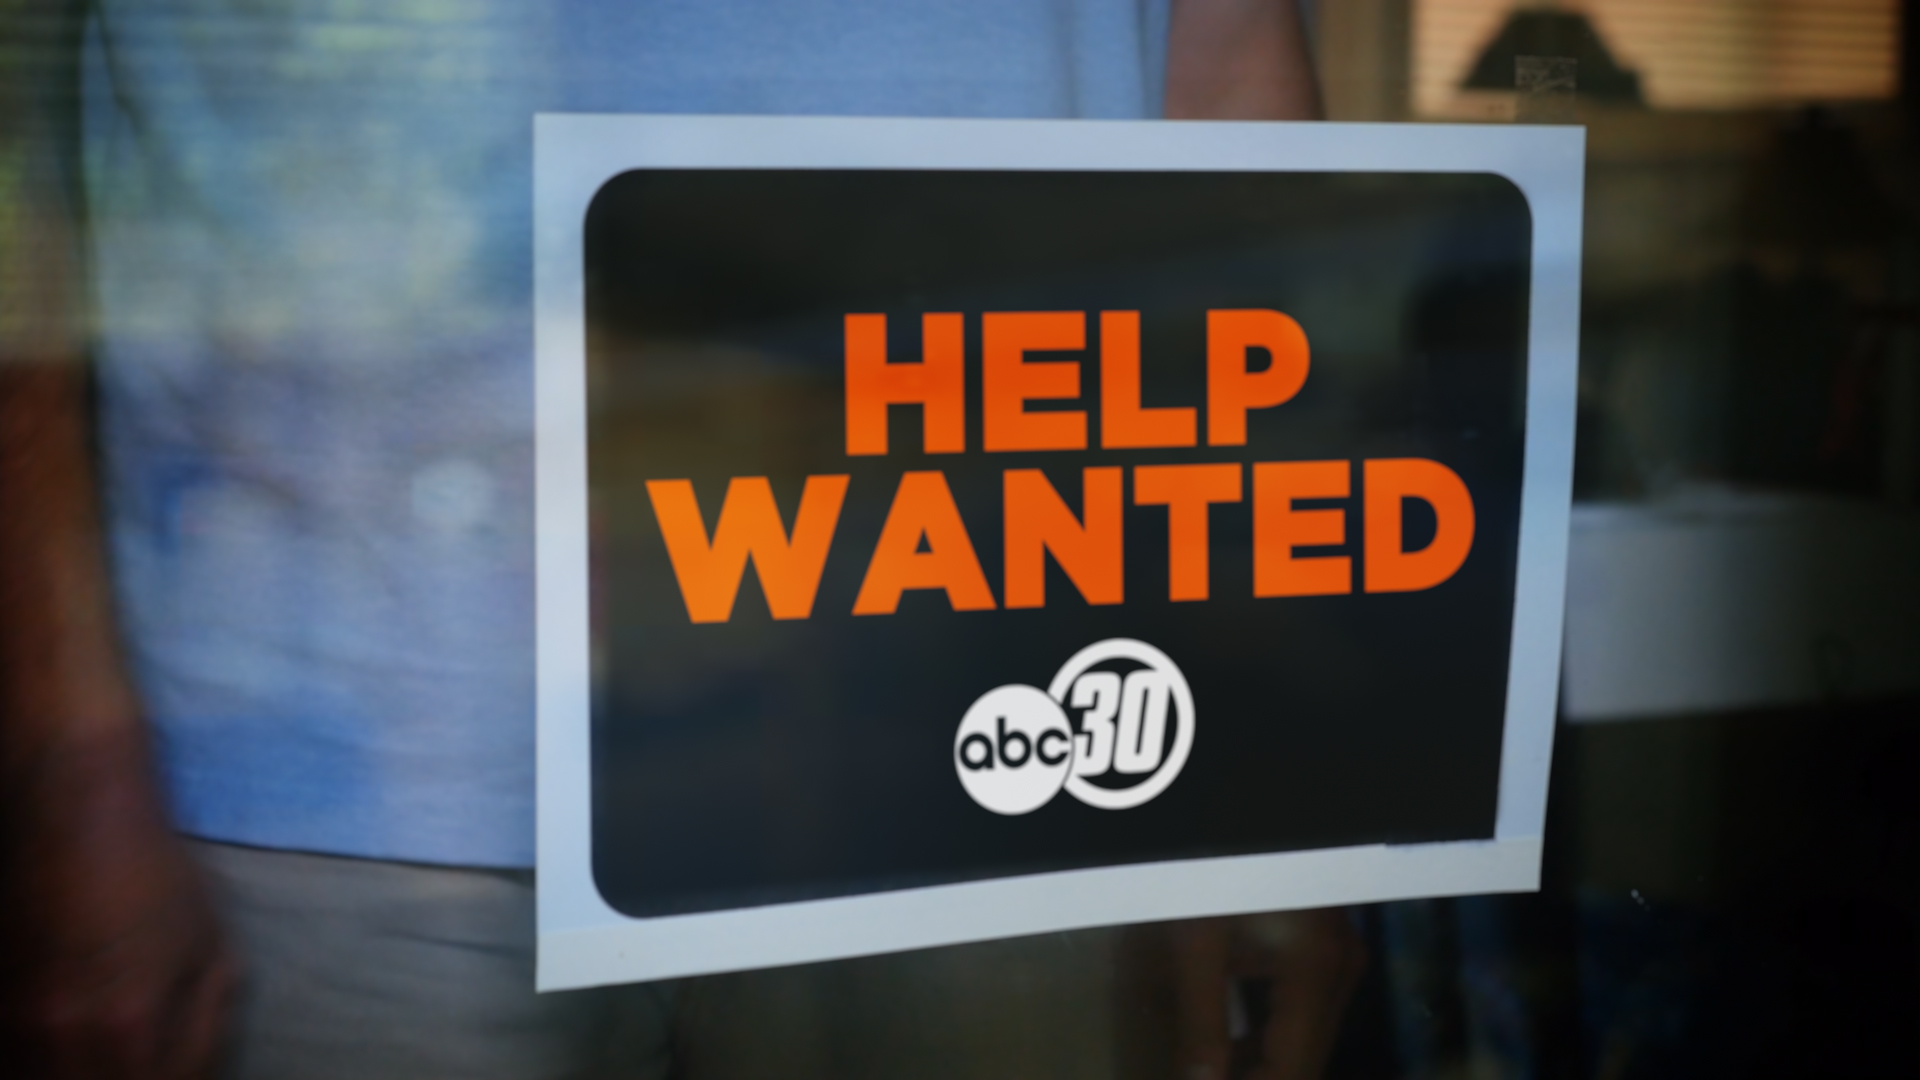 Help Wanted Job Opportunities In The Central Valley Abc30 Fresno